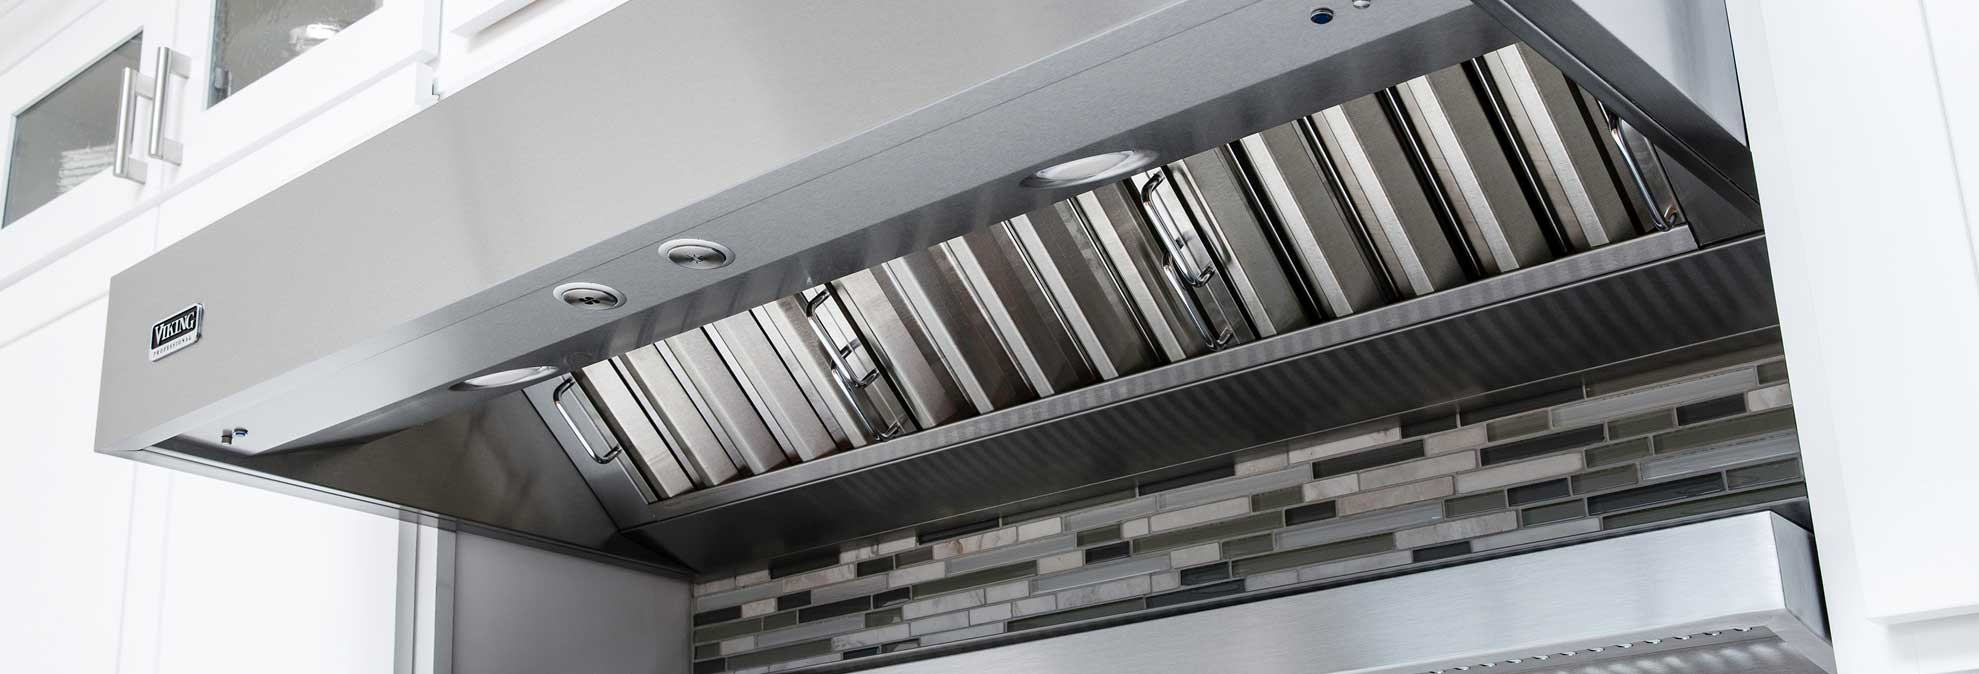 hight resolution of kitchen hood exhaust fan wiring diagram